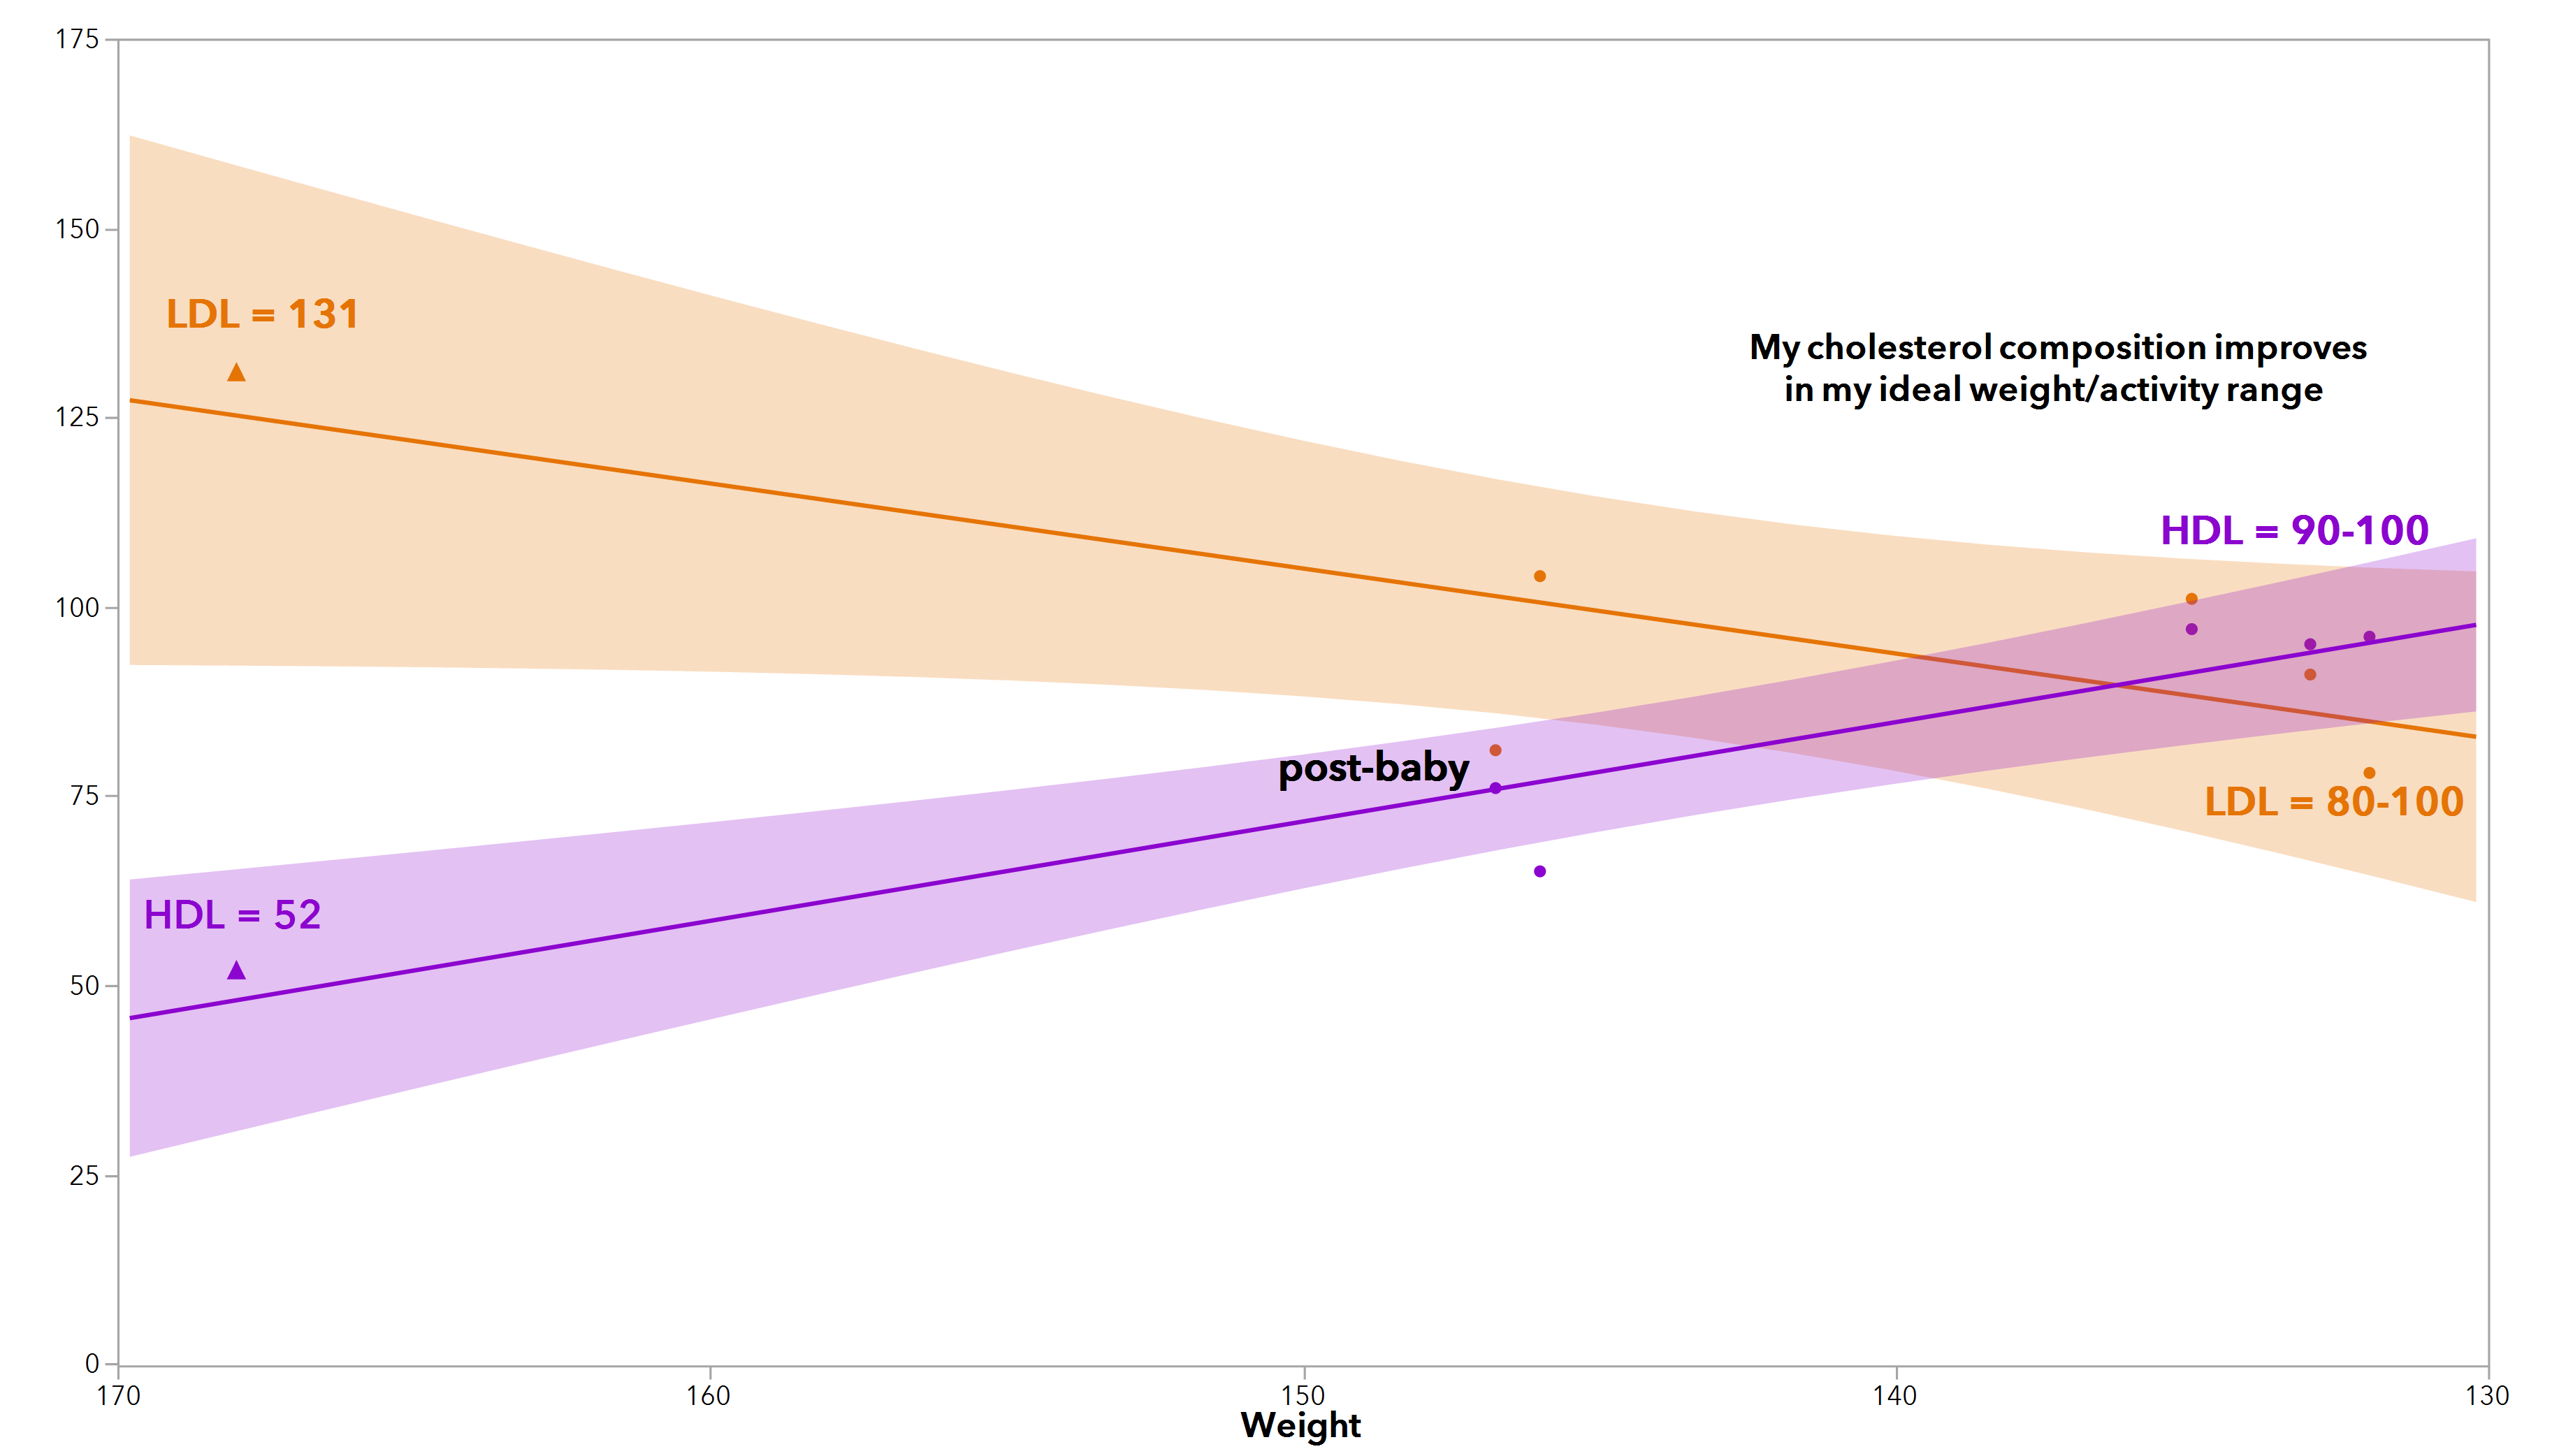 An alternative view of my cholesterol test data by weight.